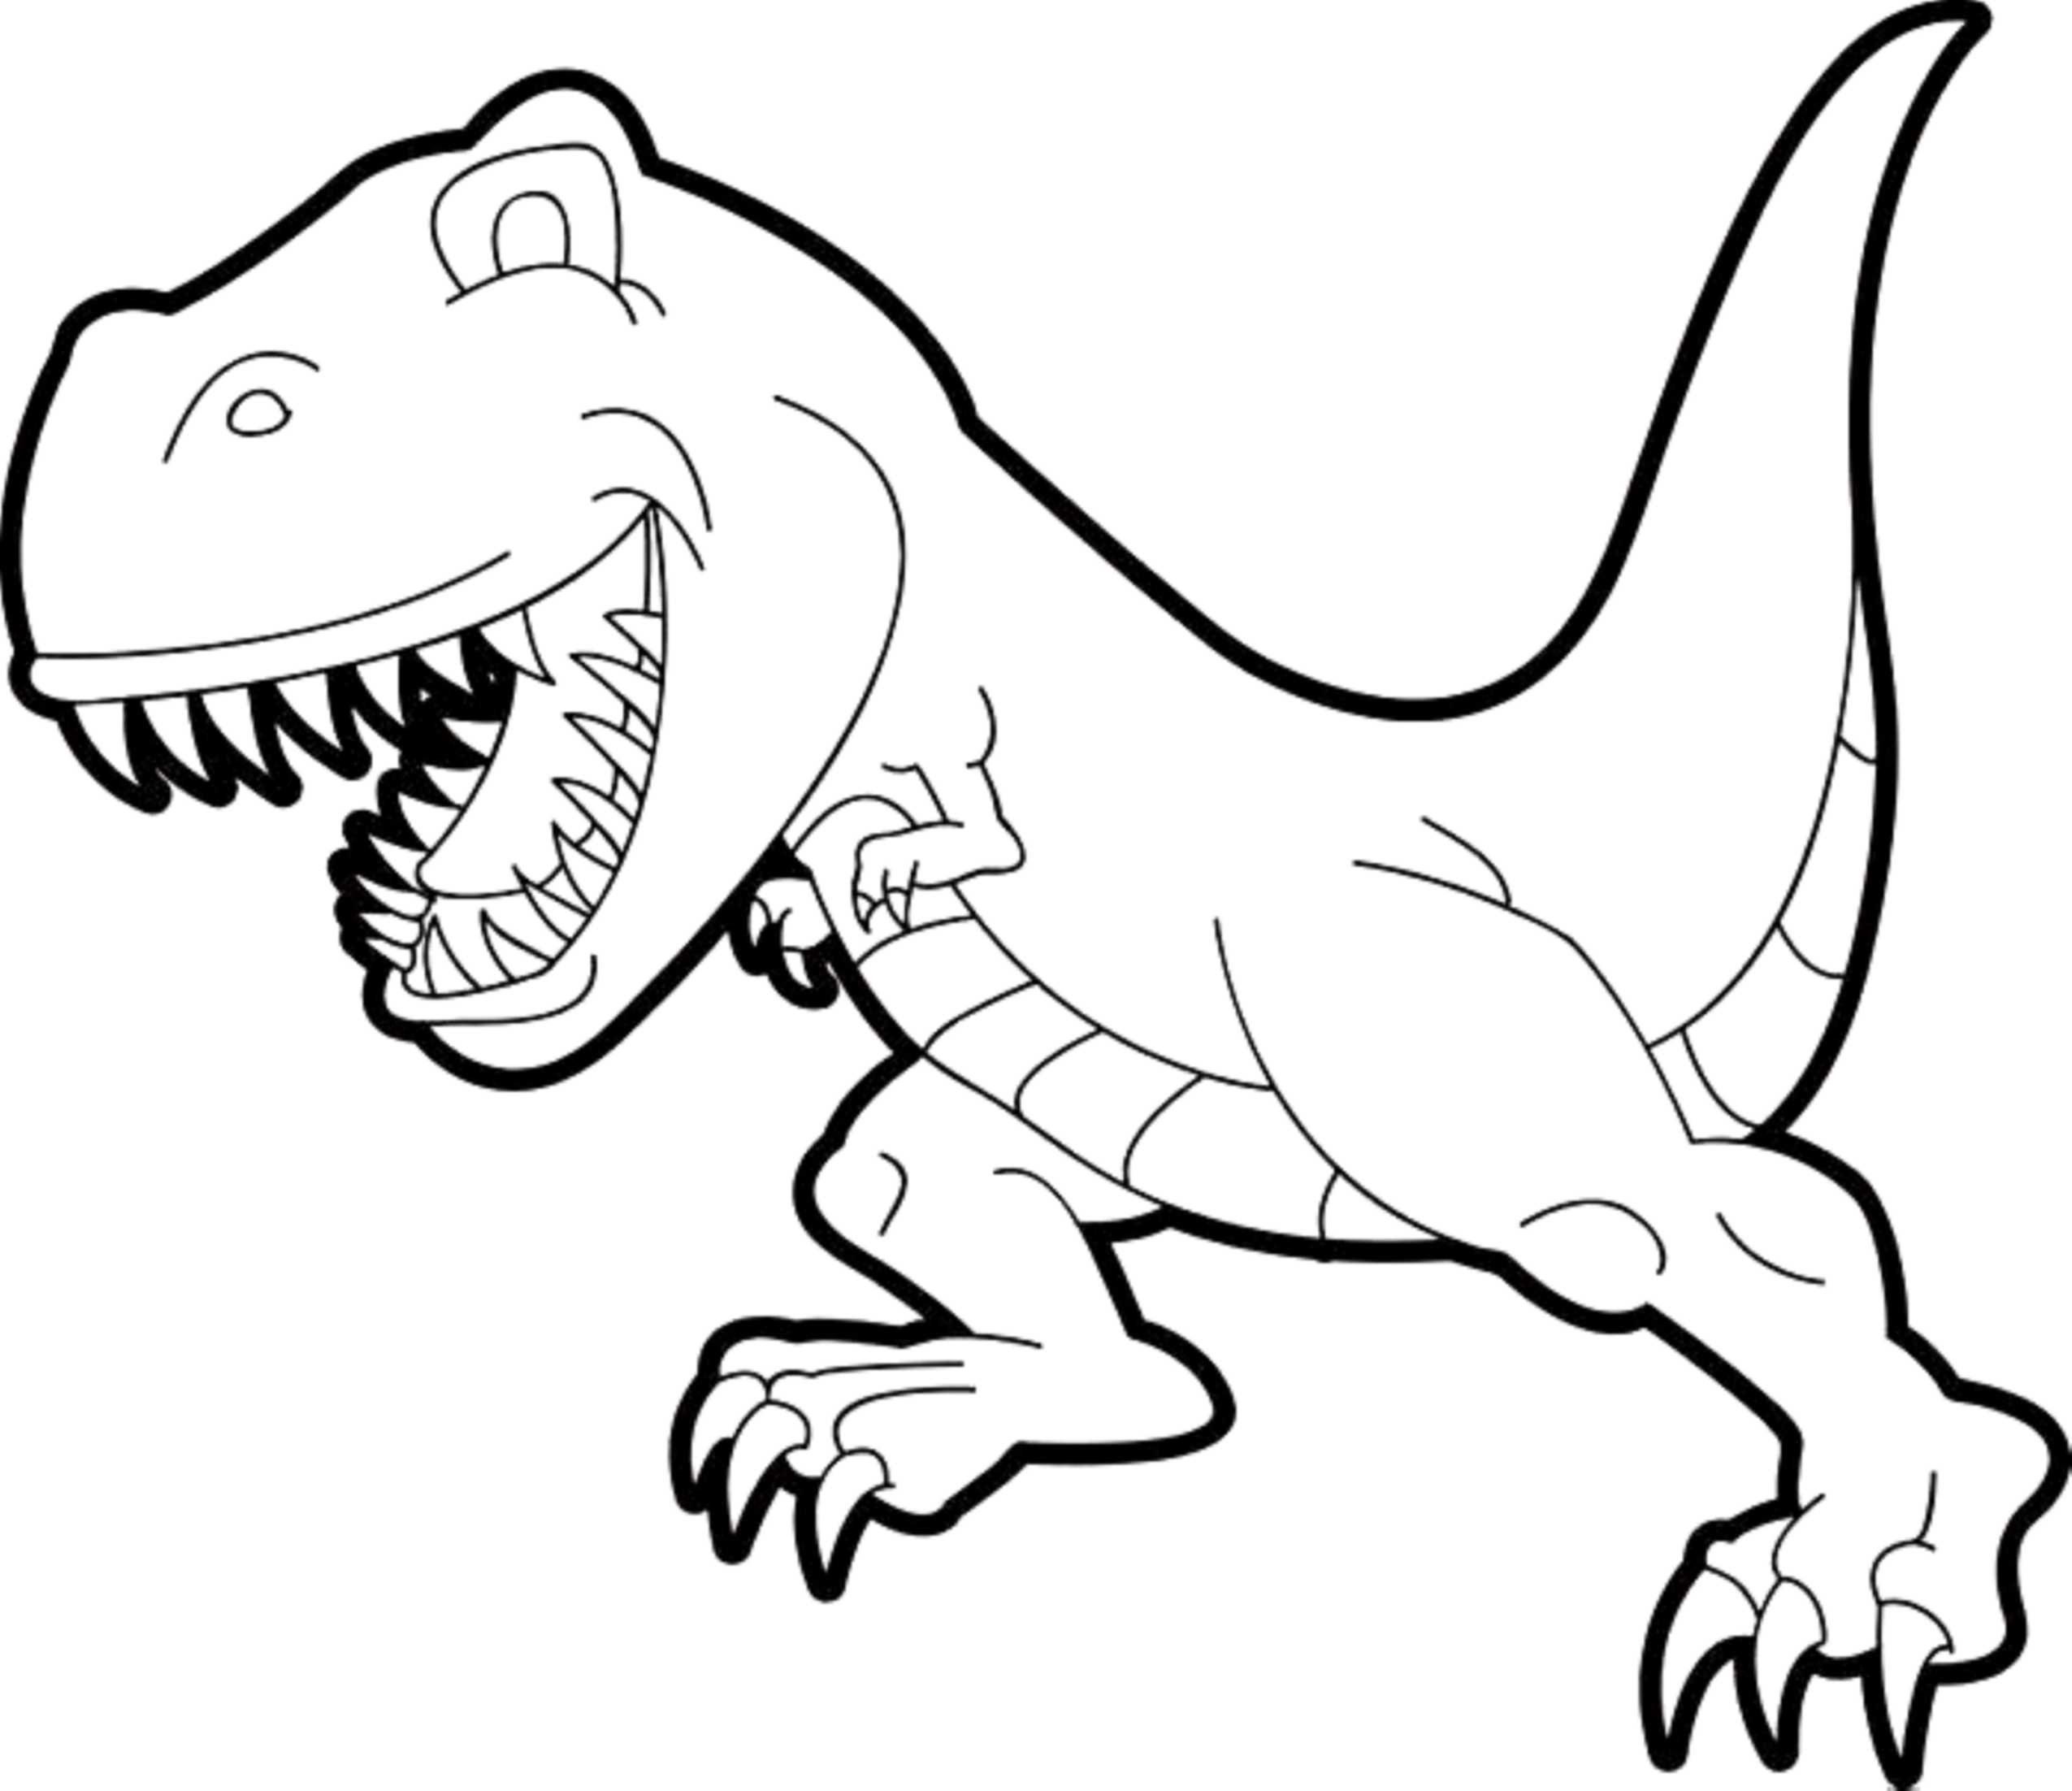 Dinosaurs T Rex Coloring Pages | Dinosaur coloring pages ...